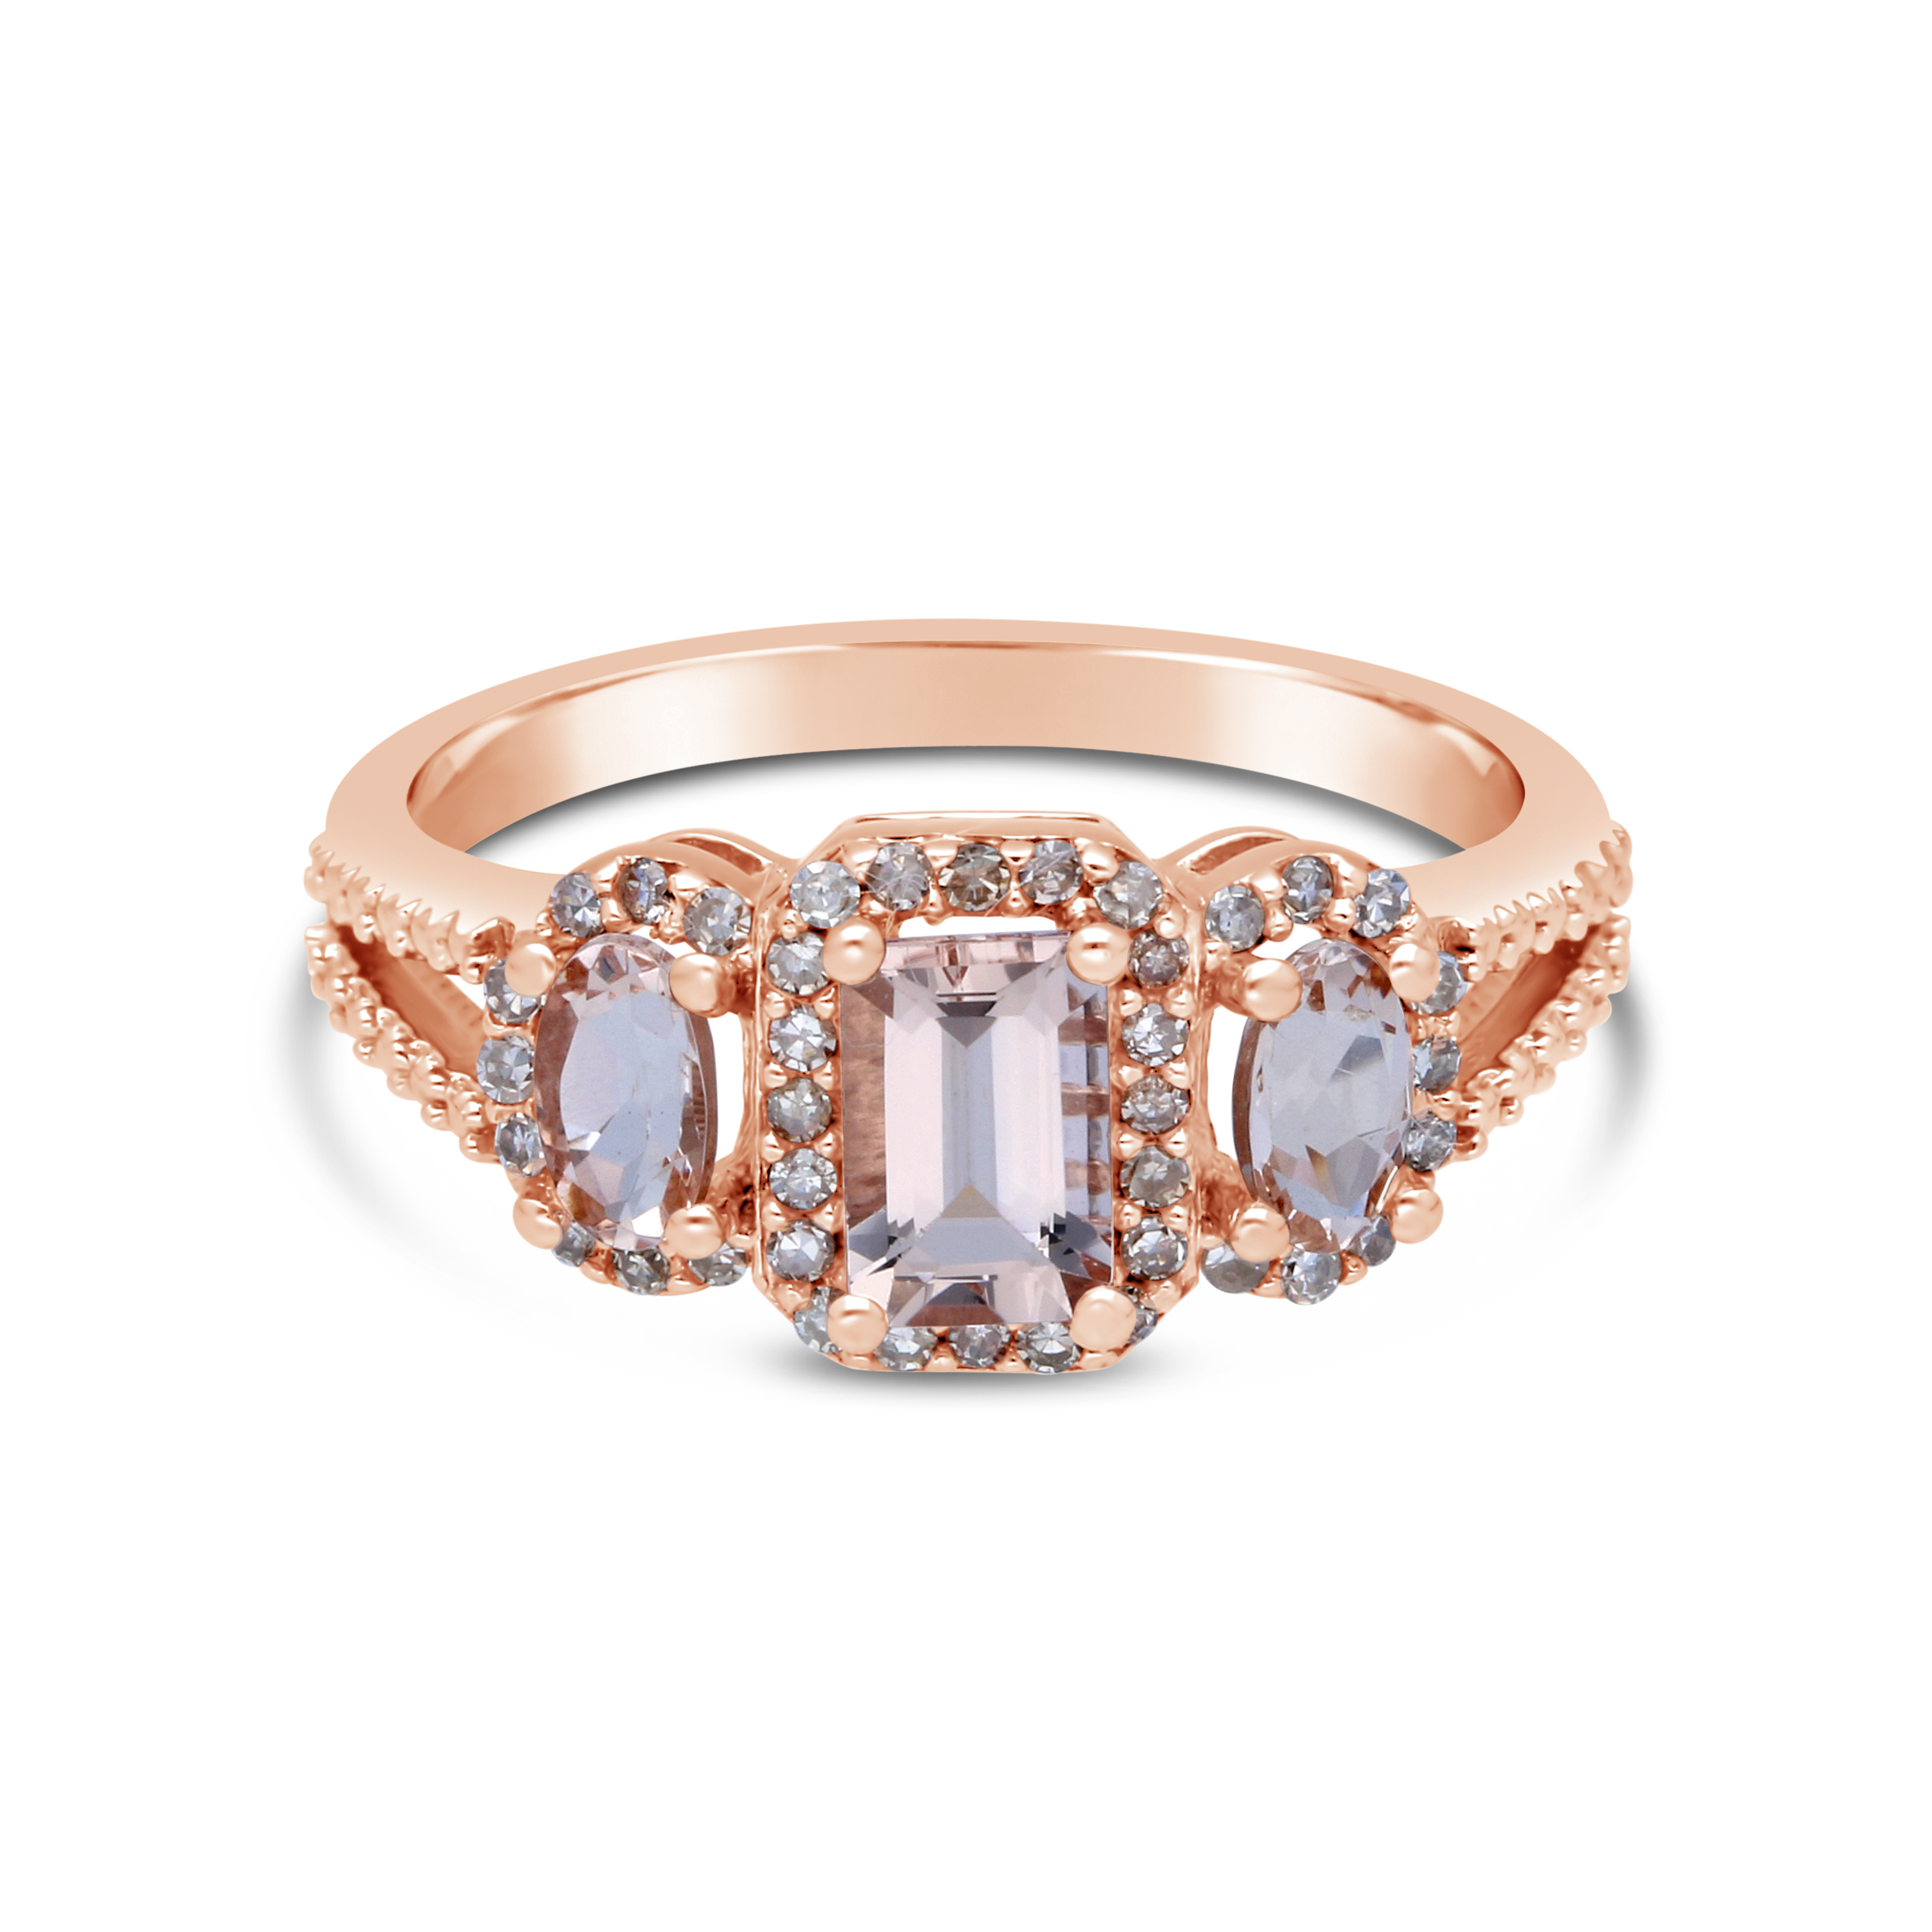 Rose Gold Enement Ring With Morganite Stone | 9ct Pink Gold 3 Stone Morganite Diamond Ring Nwj